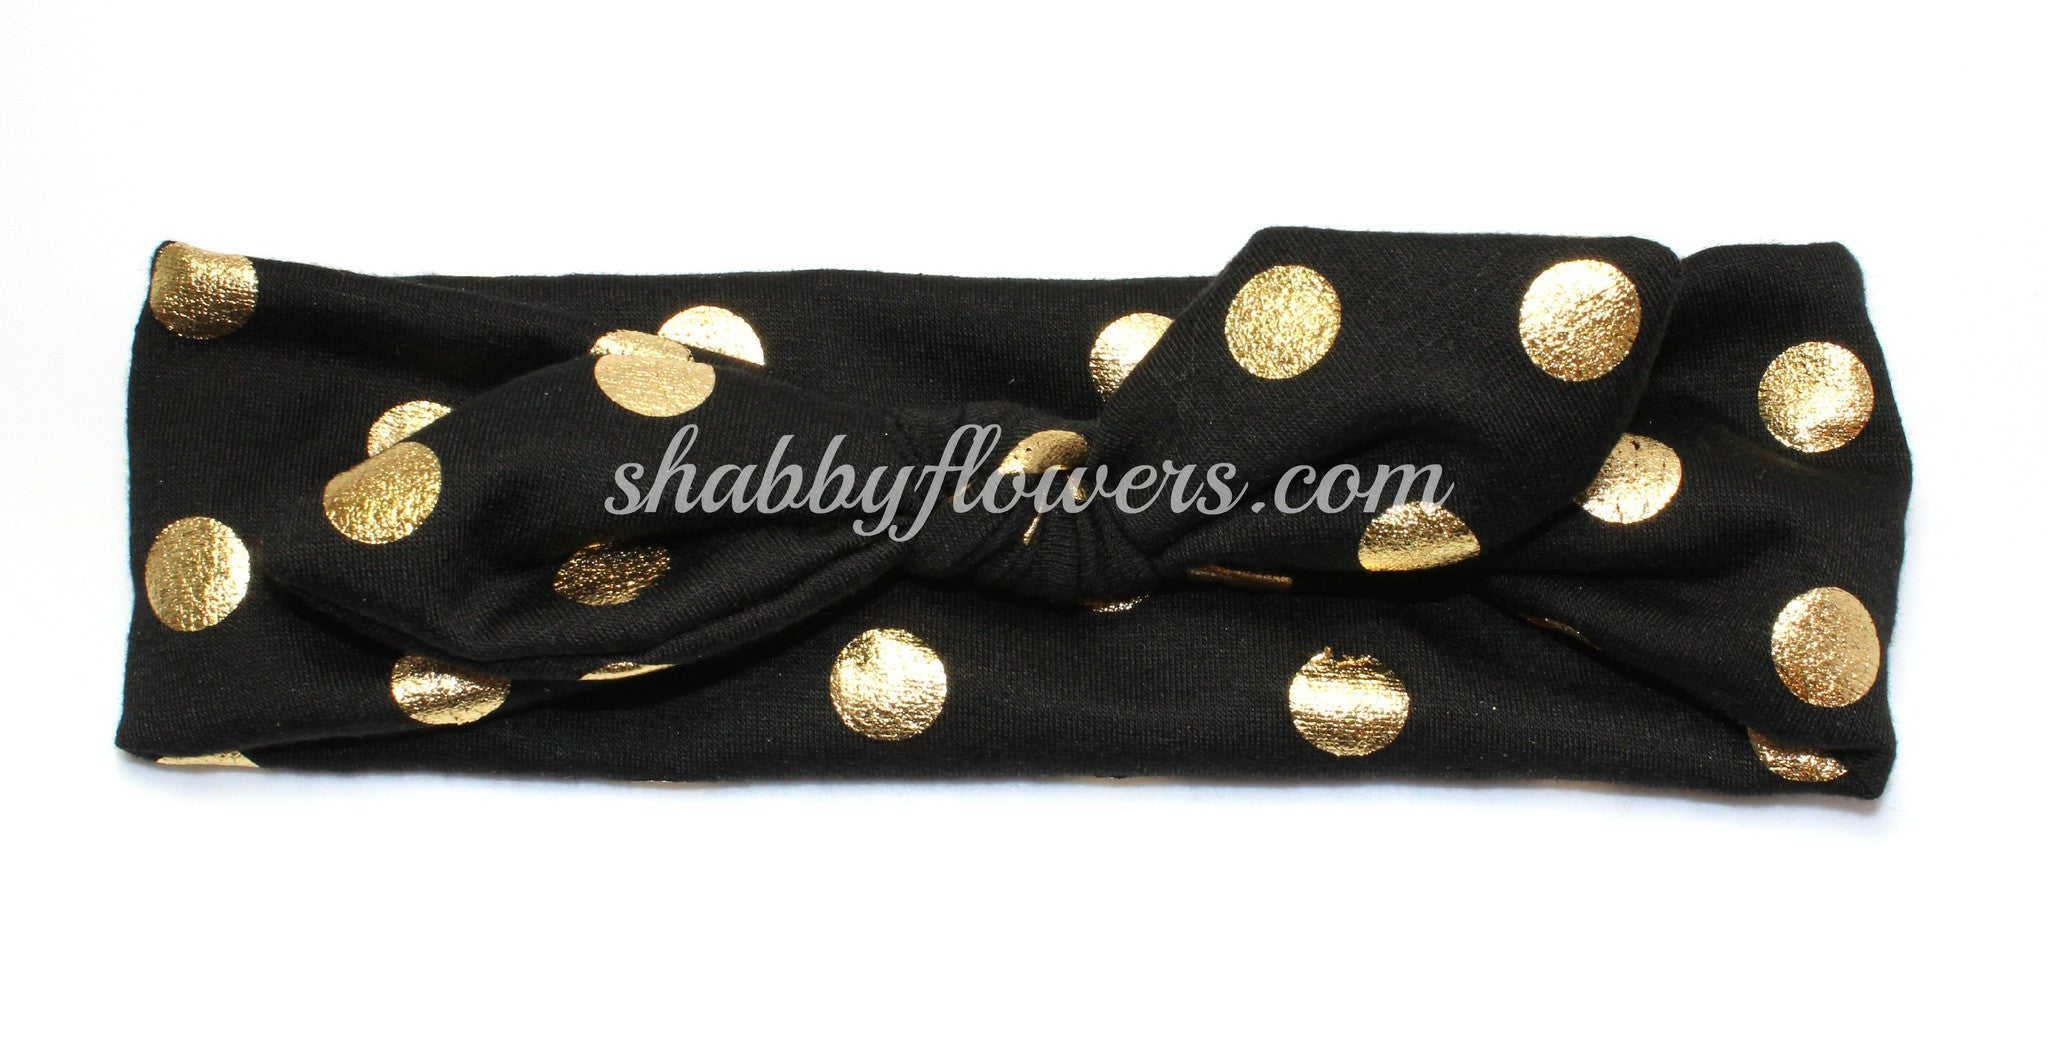 Knot Headband- Gold Foil Dots on Black - Small - shabbyflowers.com